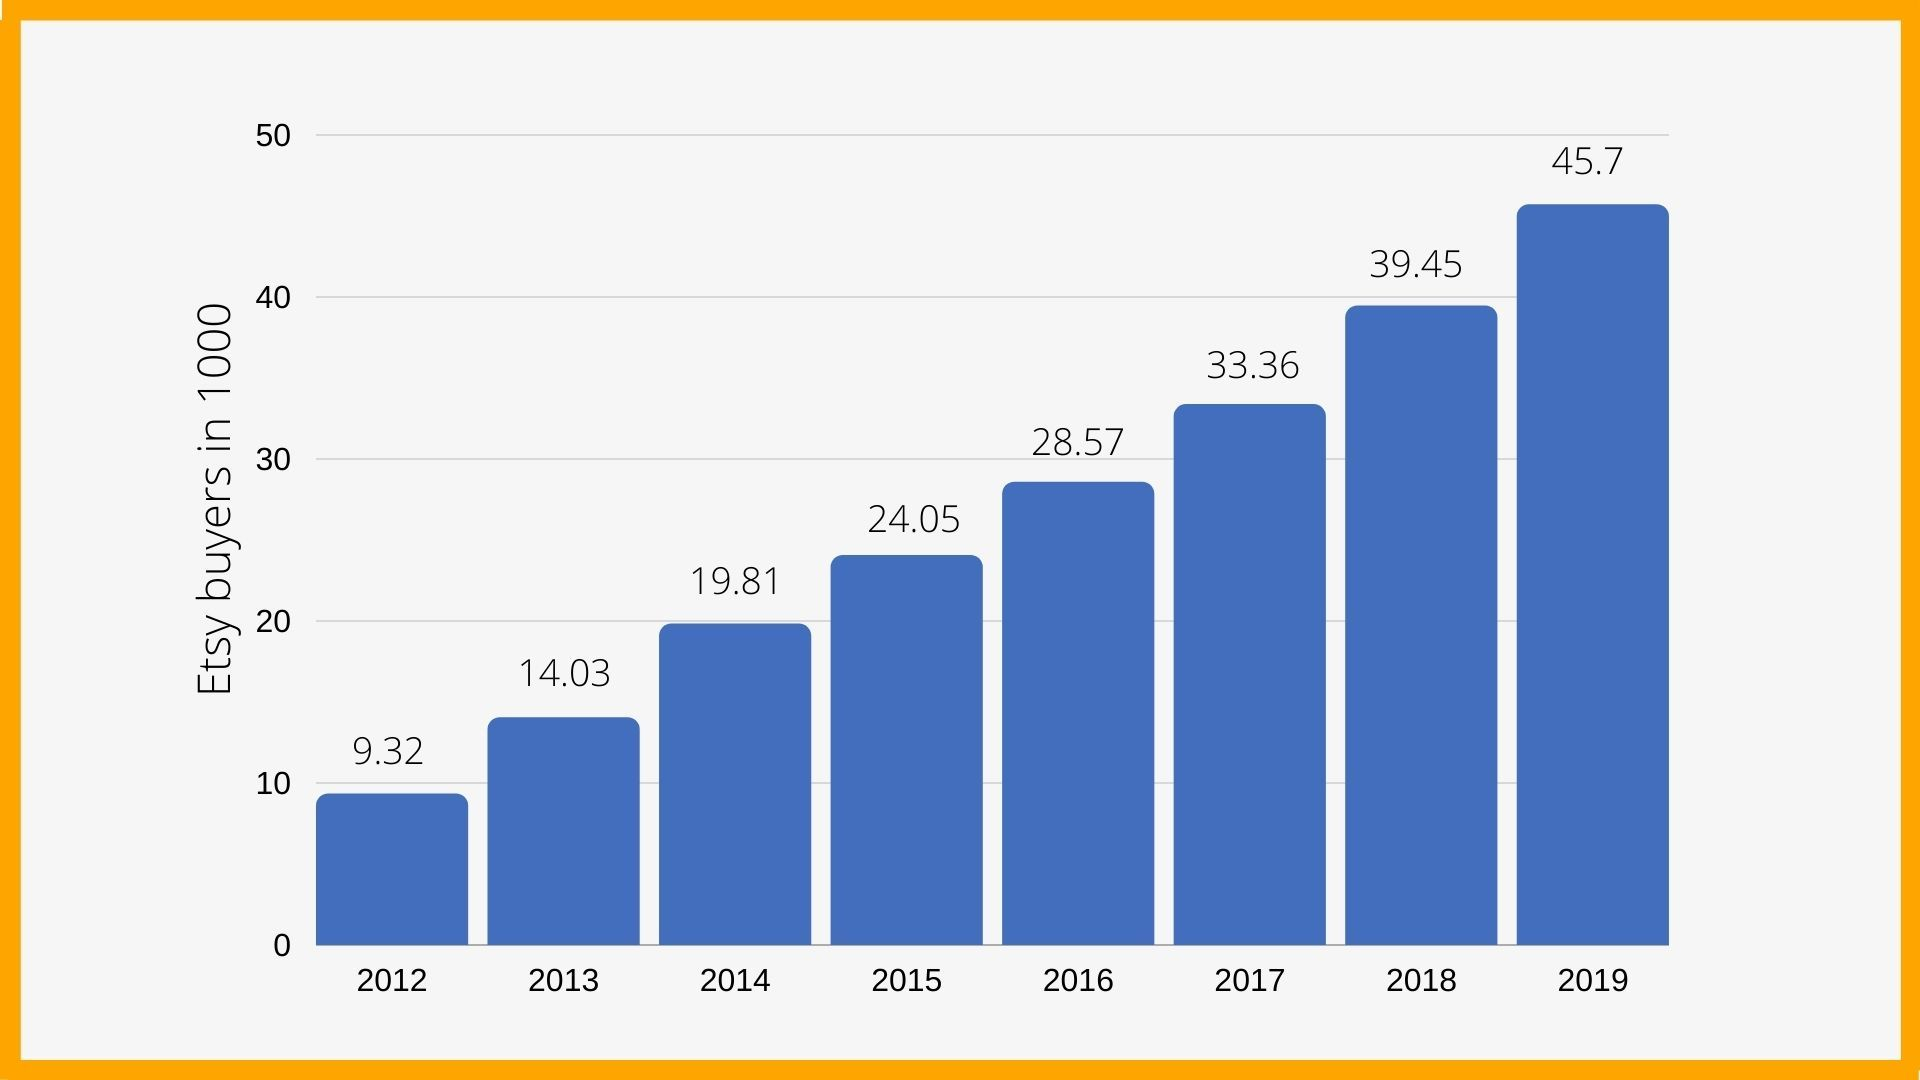 No. of active Etsy buyer's from 2012 to 2019(in millions)